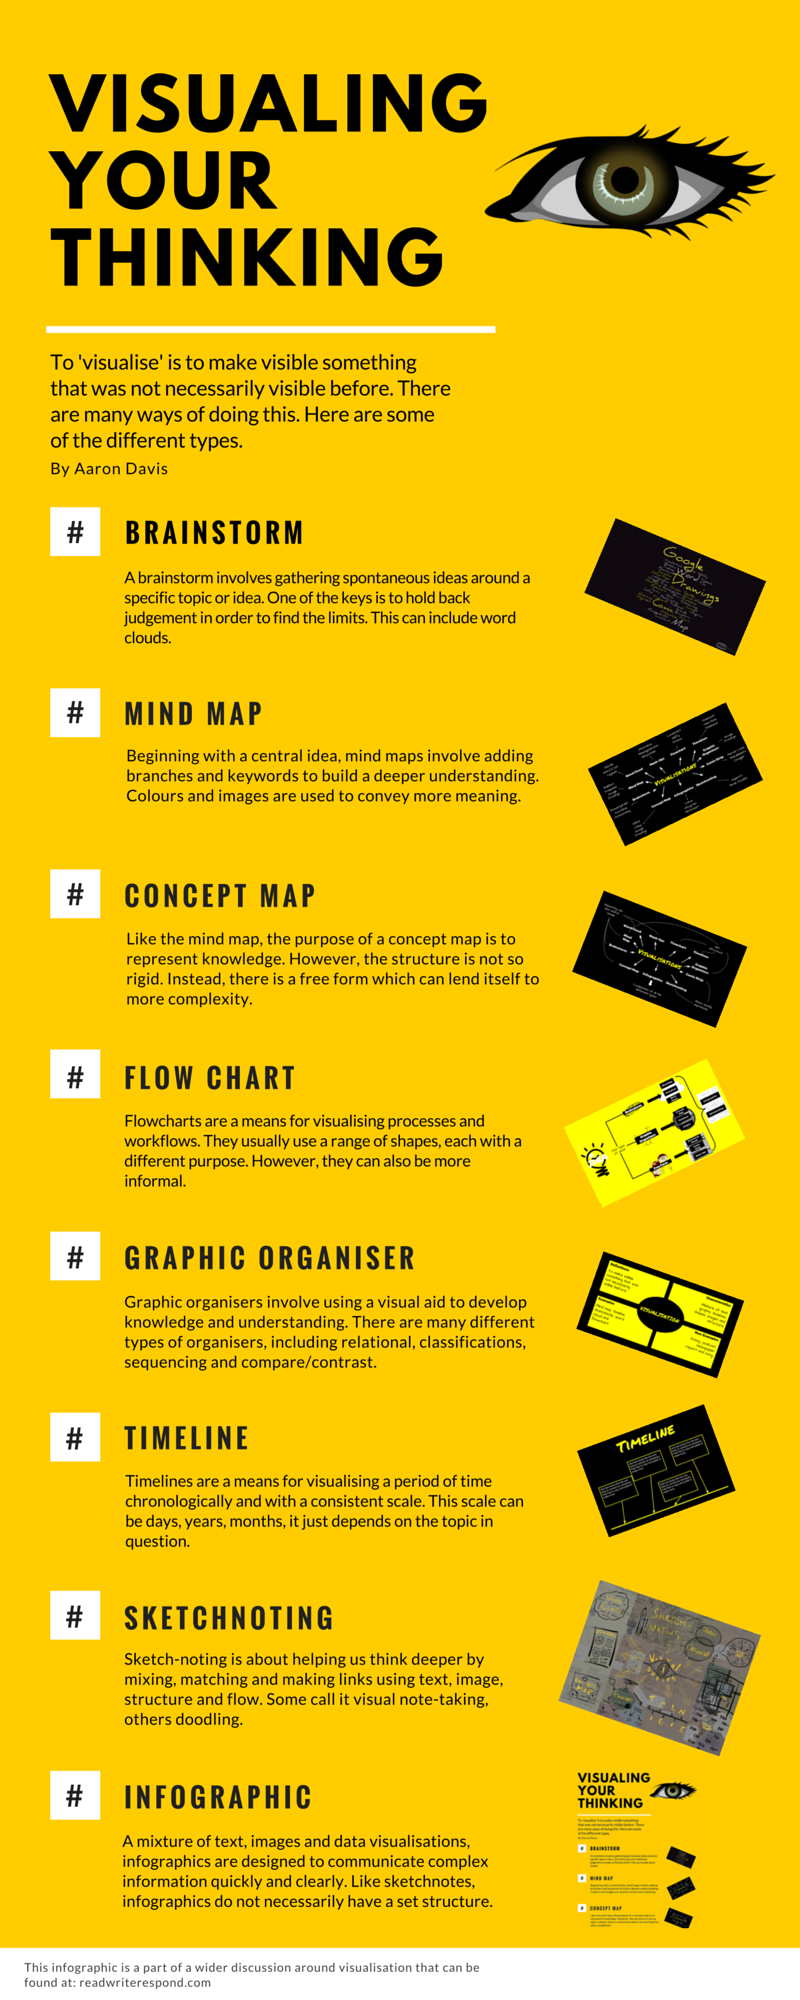 A Guide to Visualisations